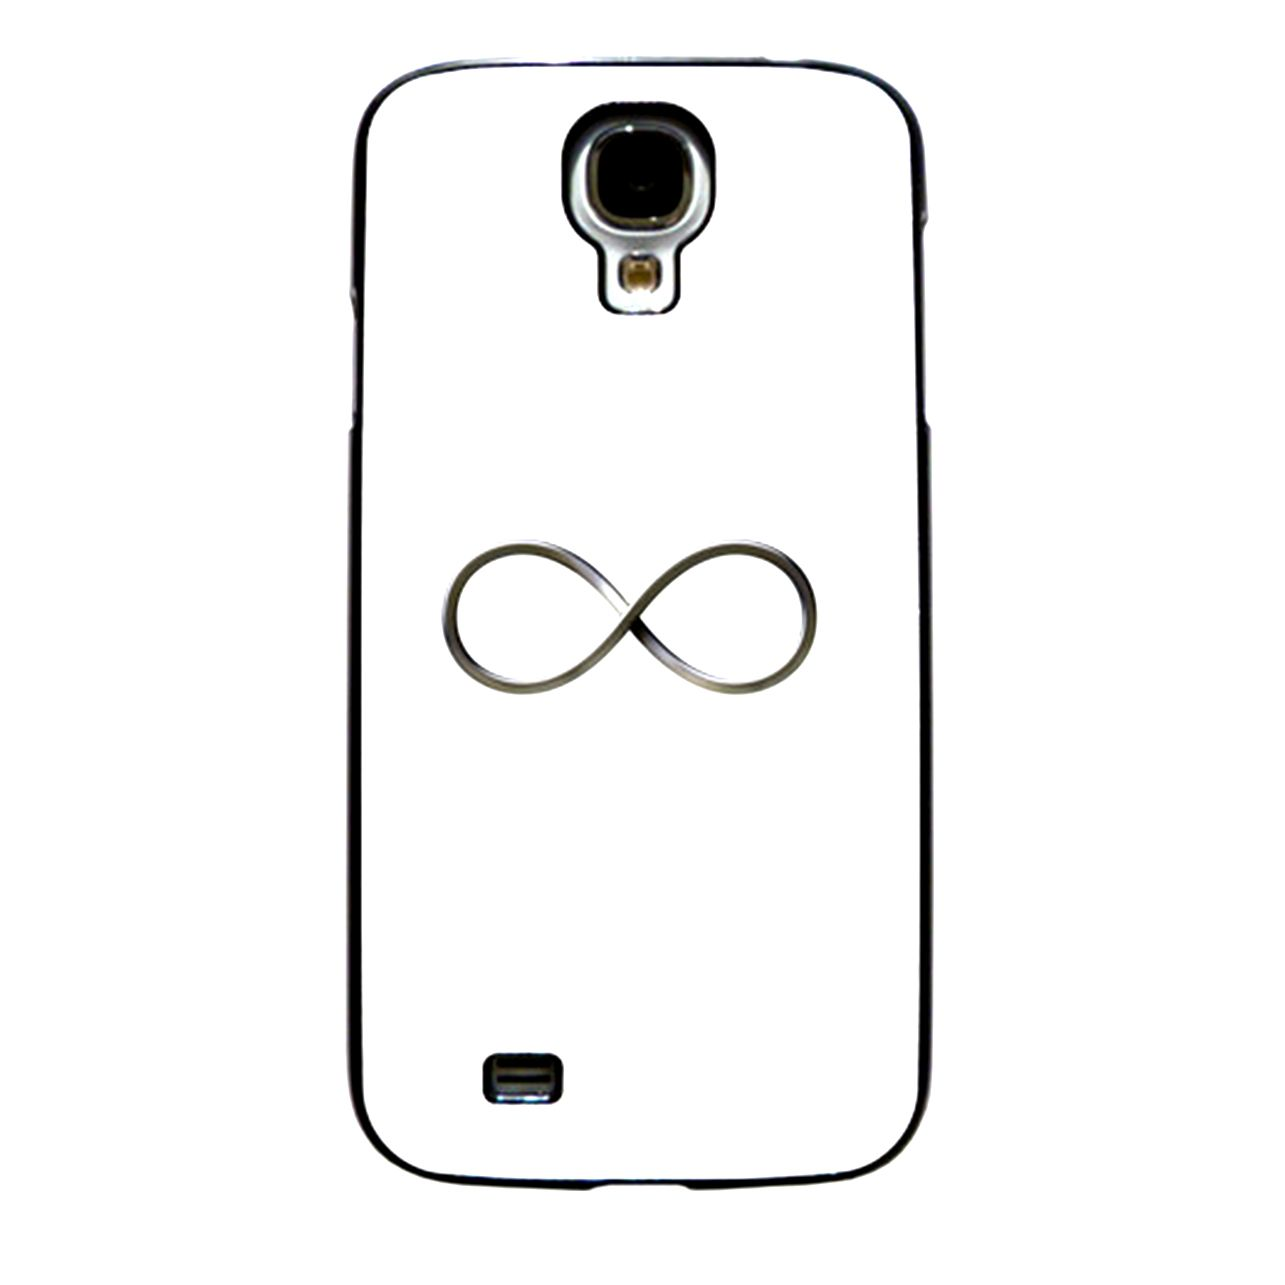 Infinity Symbol _ Geek Gifts Cell Phone Case | Infinity symbol, Cell ...